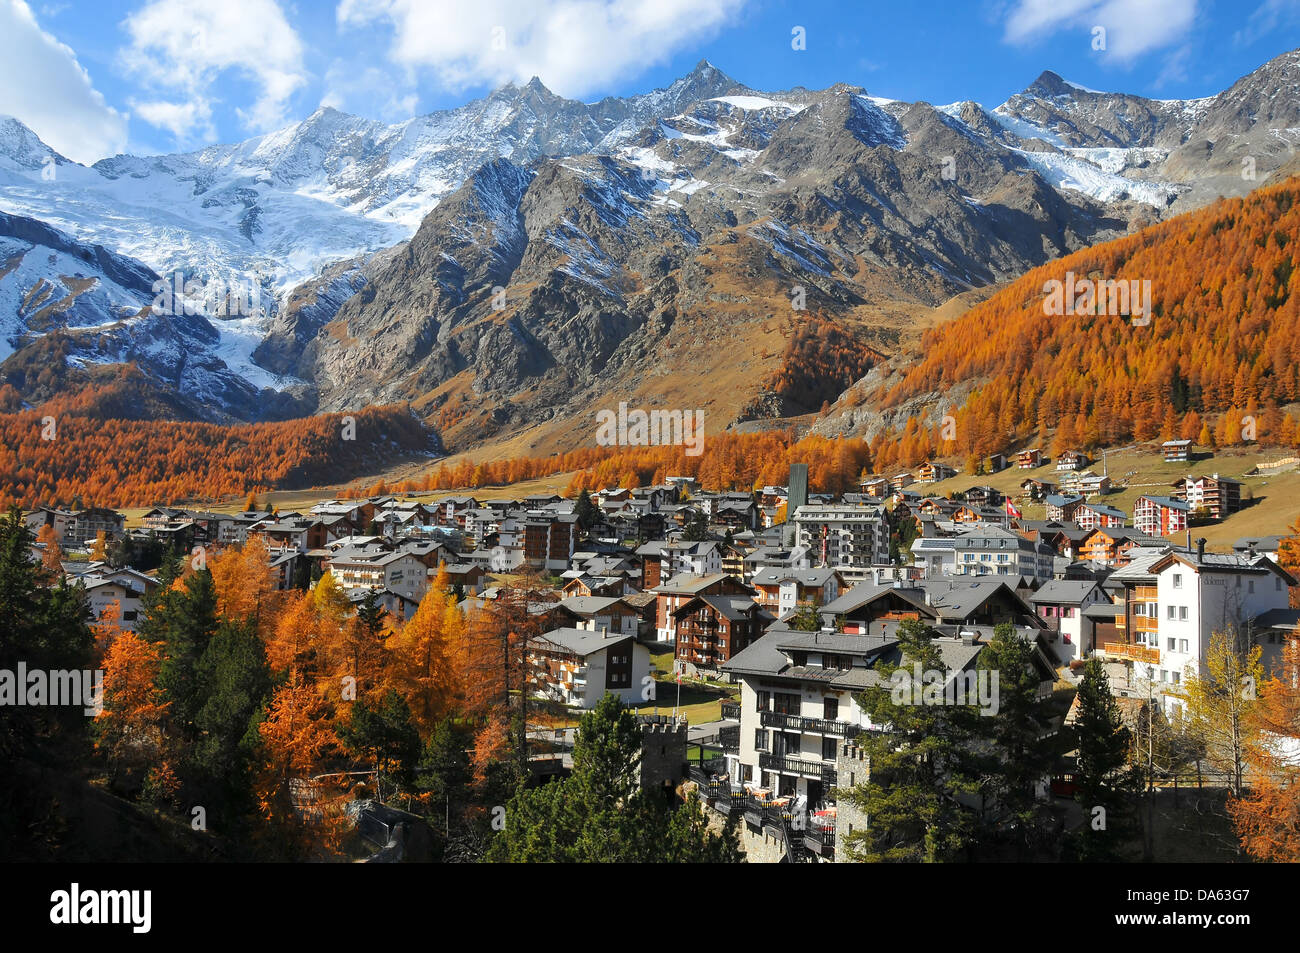 The famous year round skiing resort of Saas fee with its 13 4000m summits. In the background Dom, Taschhorn, Nadelhorn - Stock Image